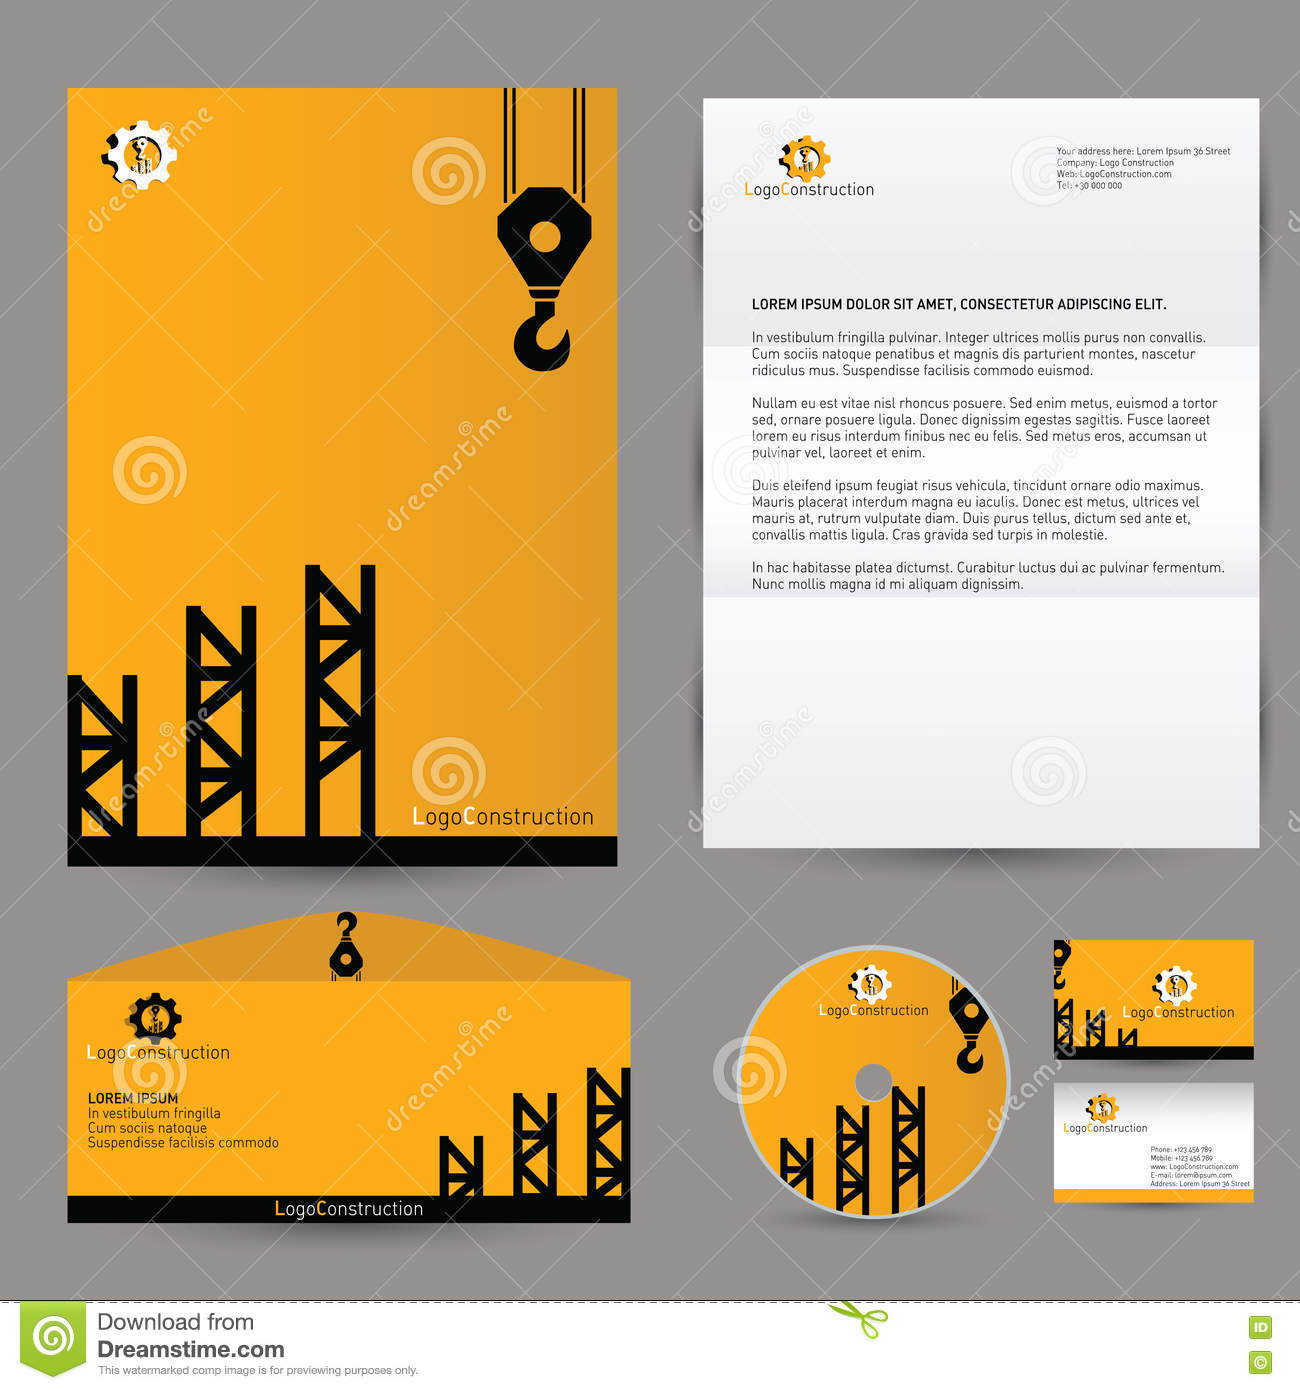 Construction Business Card Templates Download Free Image - Construction business cards templates free